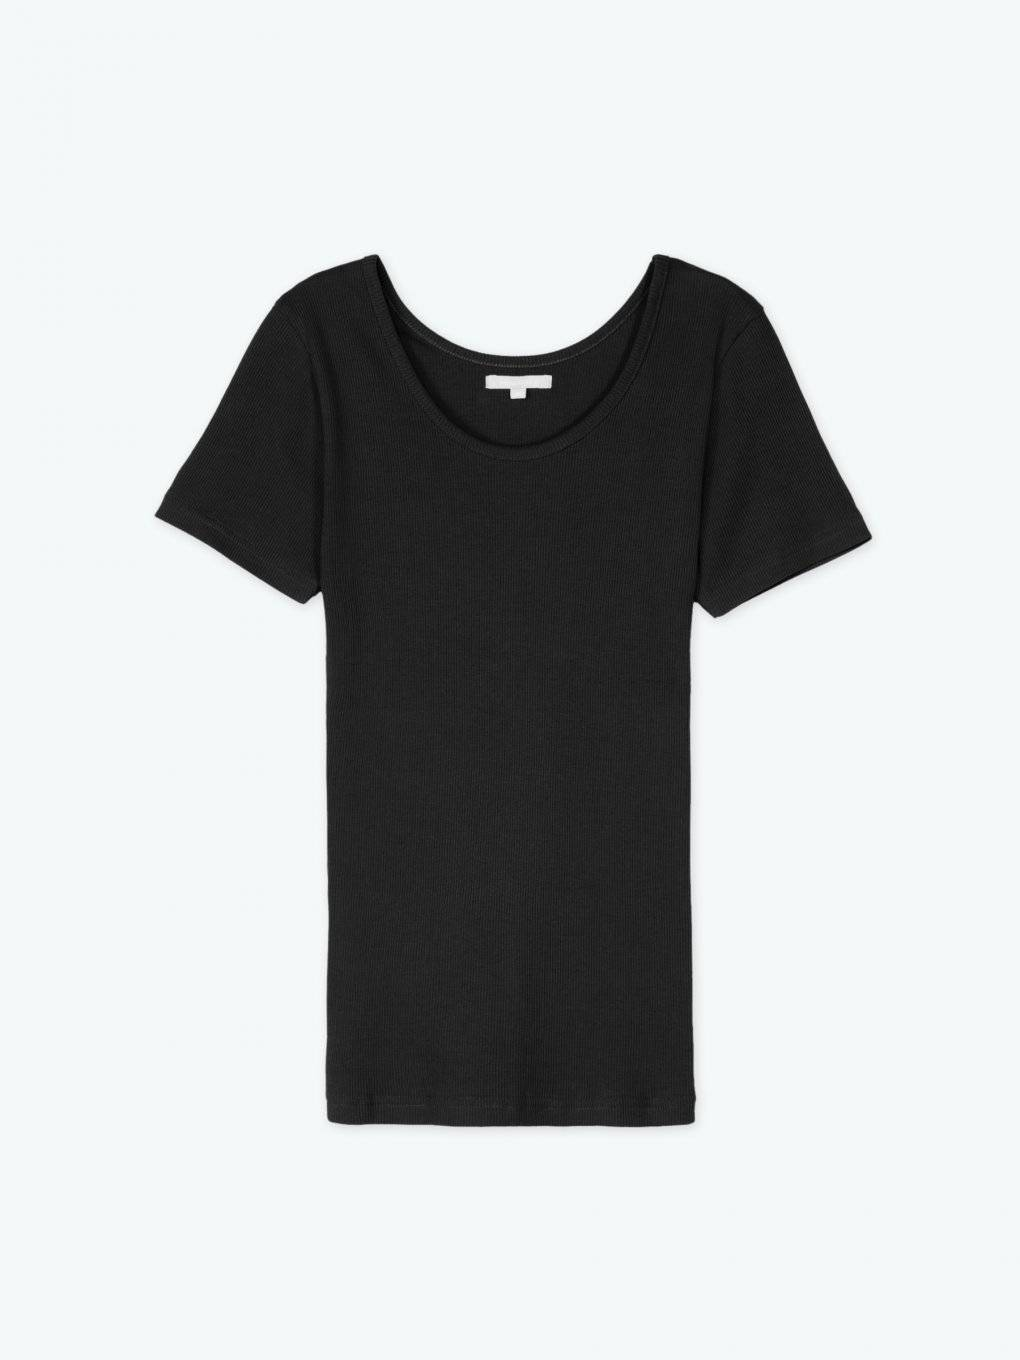 Ribbed short sleeve t-shirt with crew neck